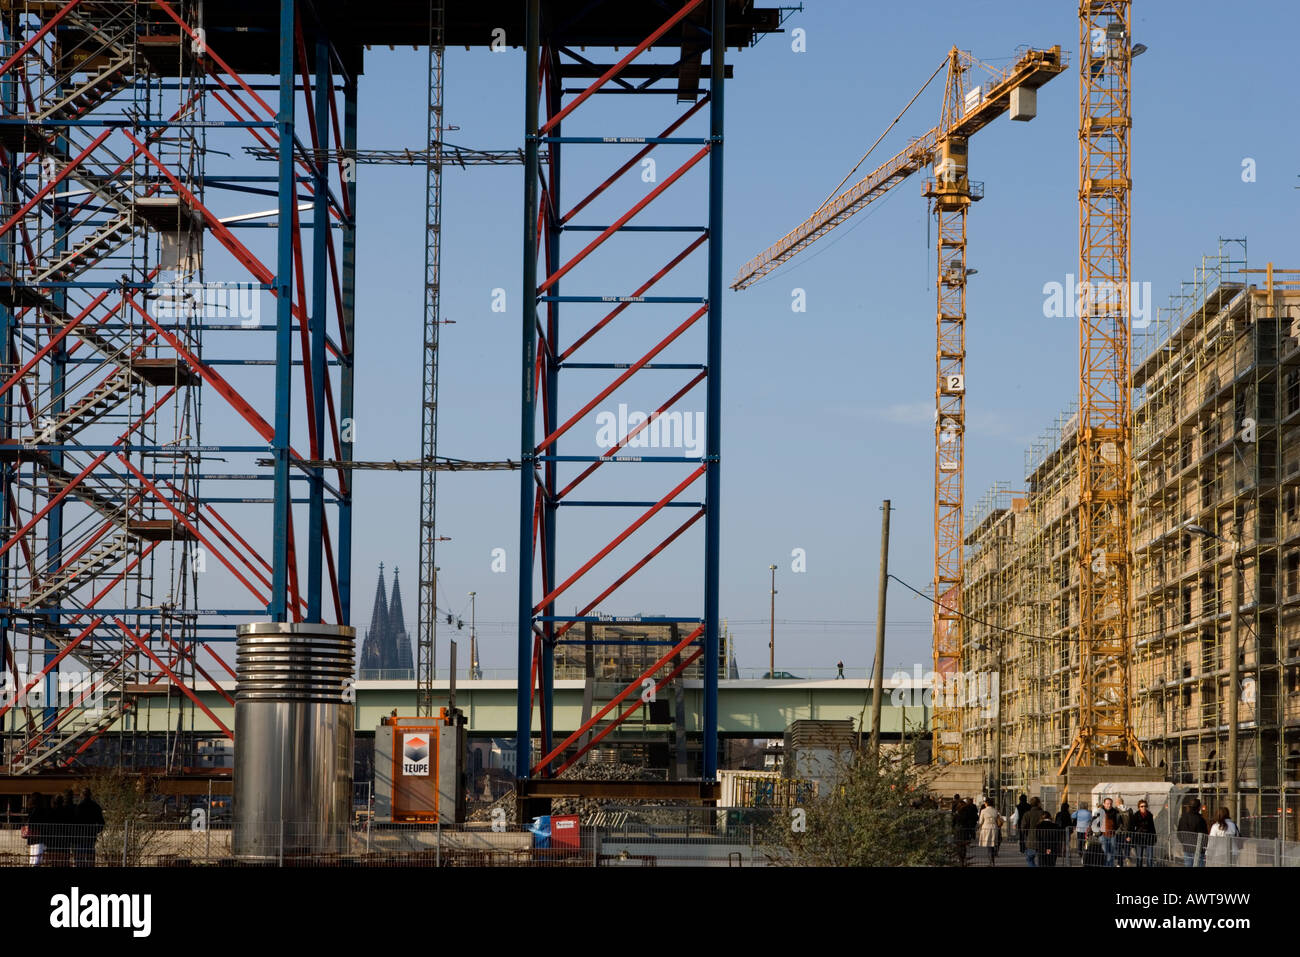 Rheinauhafen Koeln Baustelle Cologne construction site yacht port further storage town Stock Photo